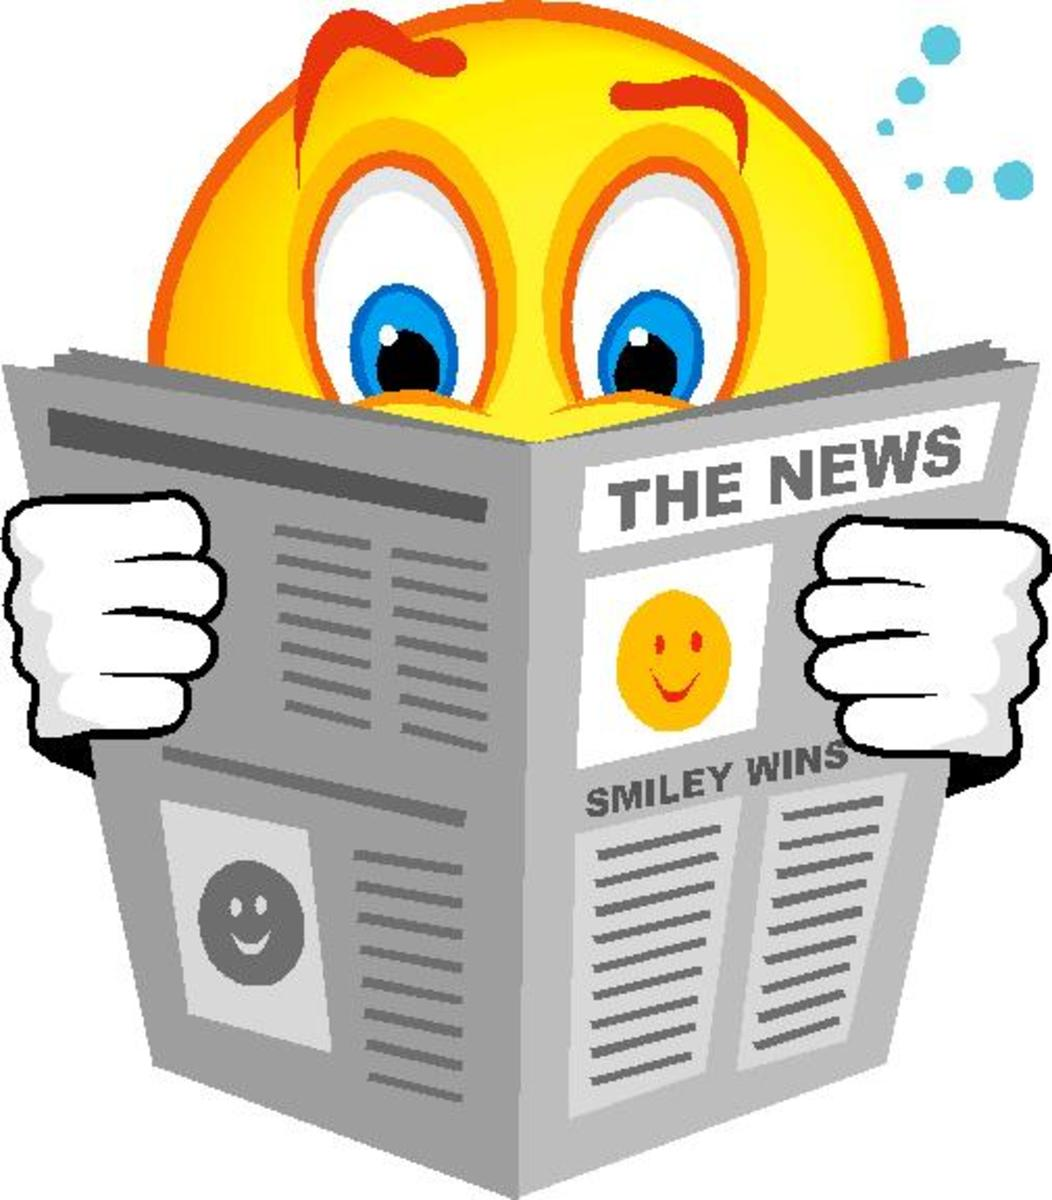 A well written Newsletter is entertaining, informative, shows something new and has active parts like links, contests, photos or riddles.